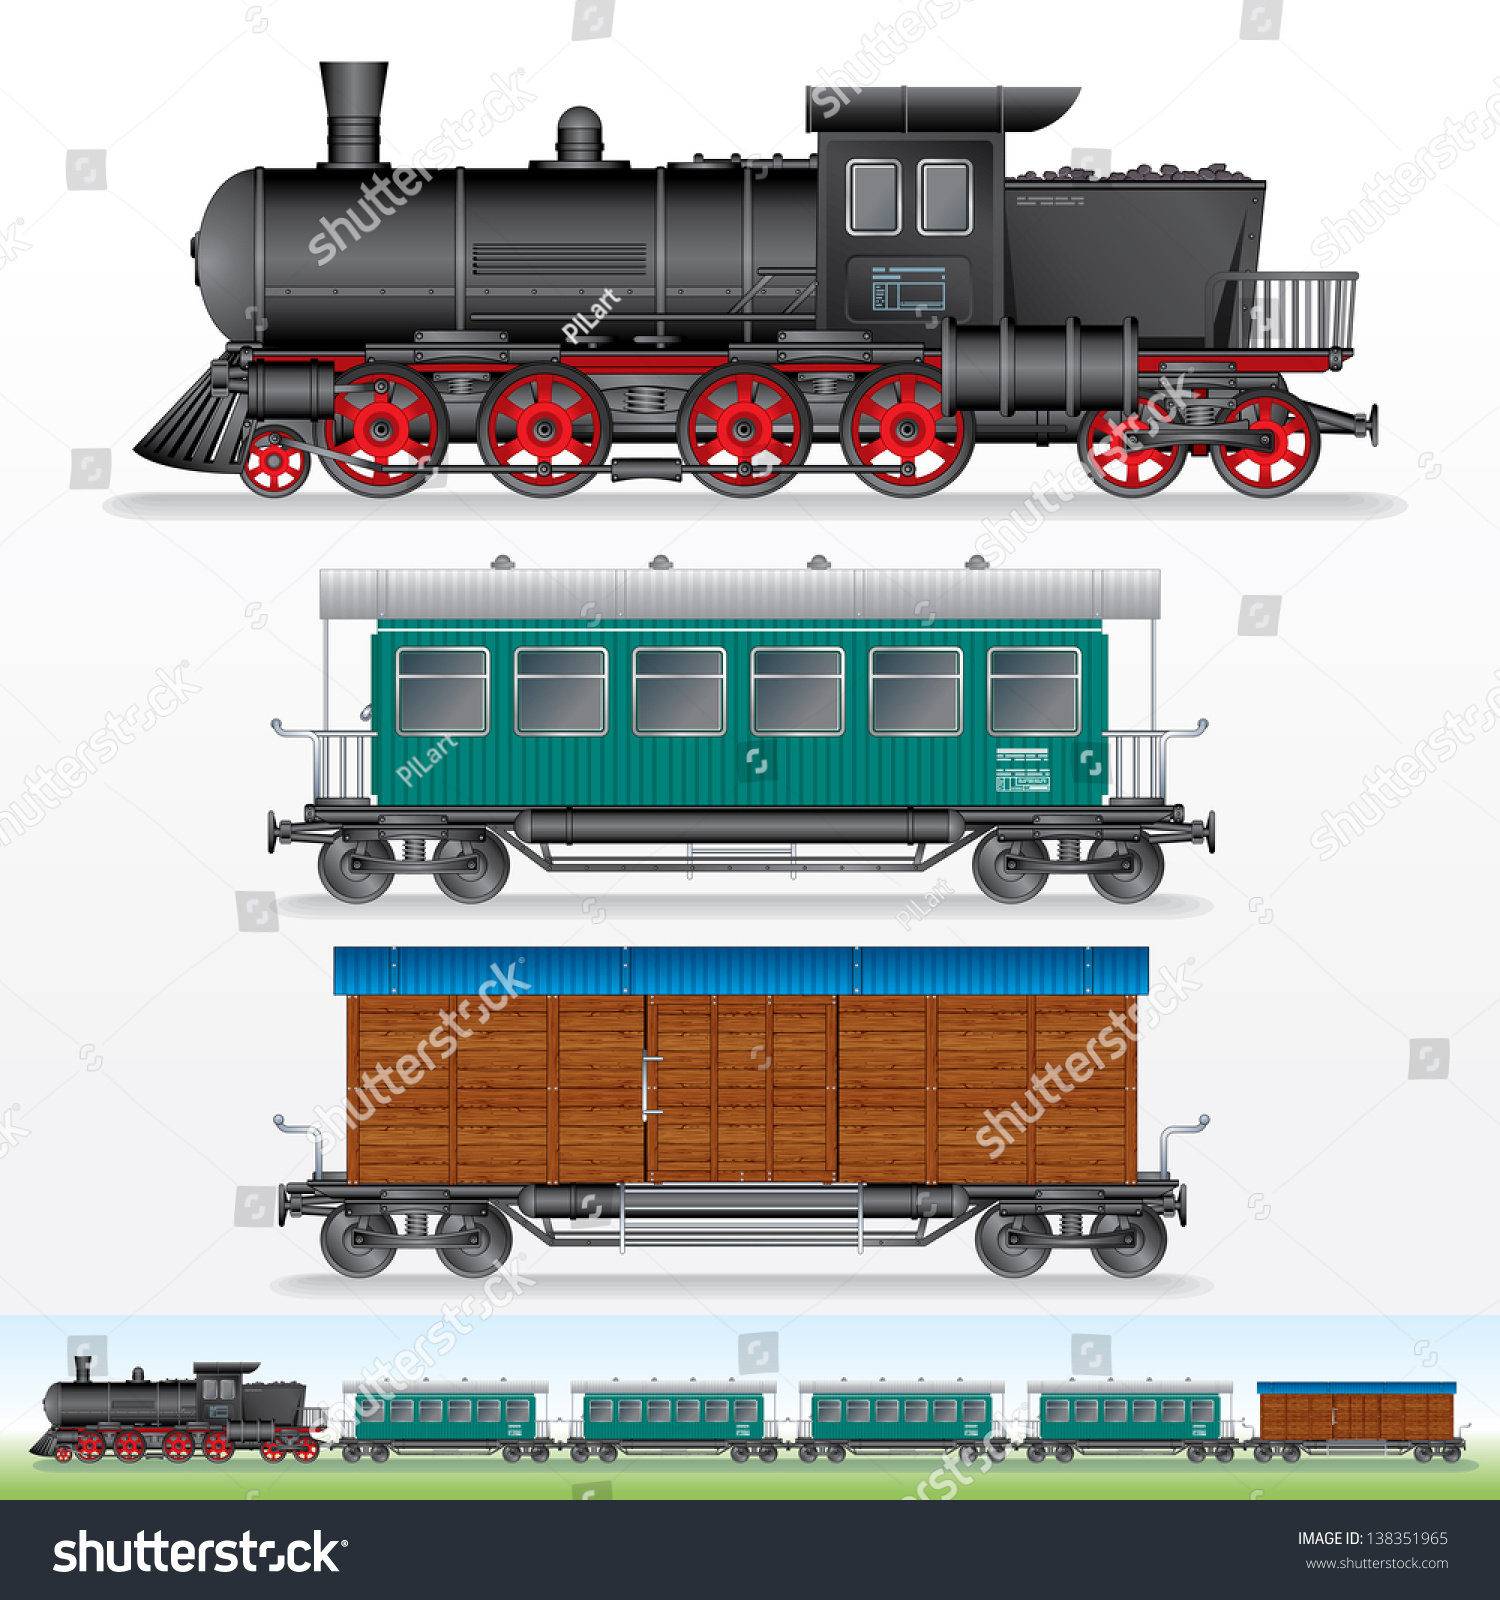 Train car side view login to view prices realised - Retro Train Vector Image Of Steam Lokomotive With Railway Cargo Waggon And Passenger Car